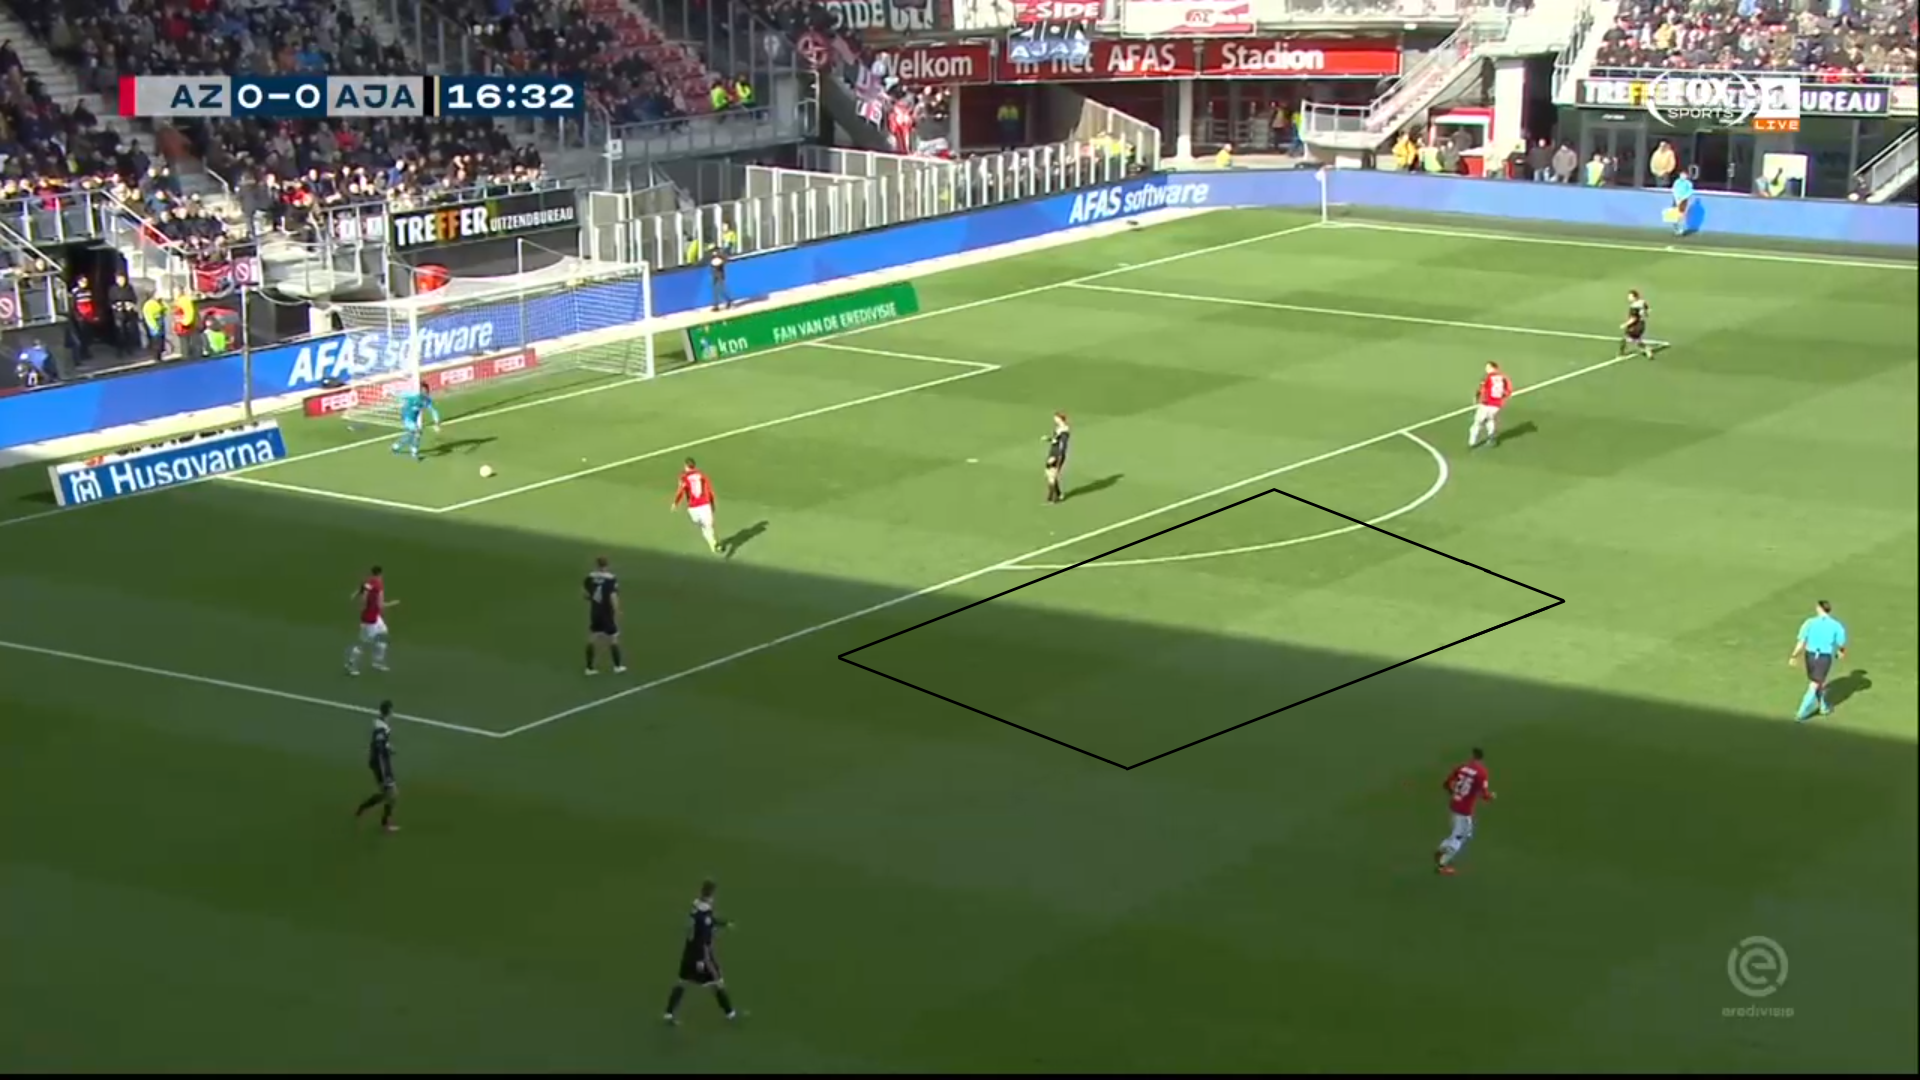 Ajax AZ Alkmaar Eredivisie Tactical Analysis